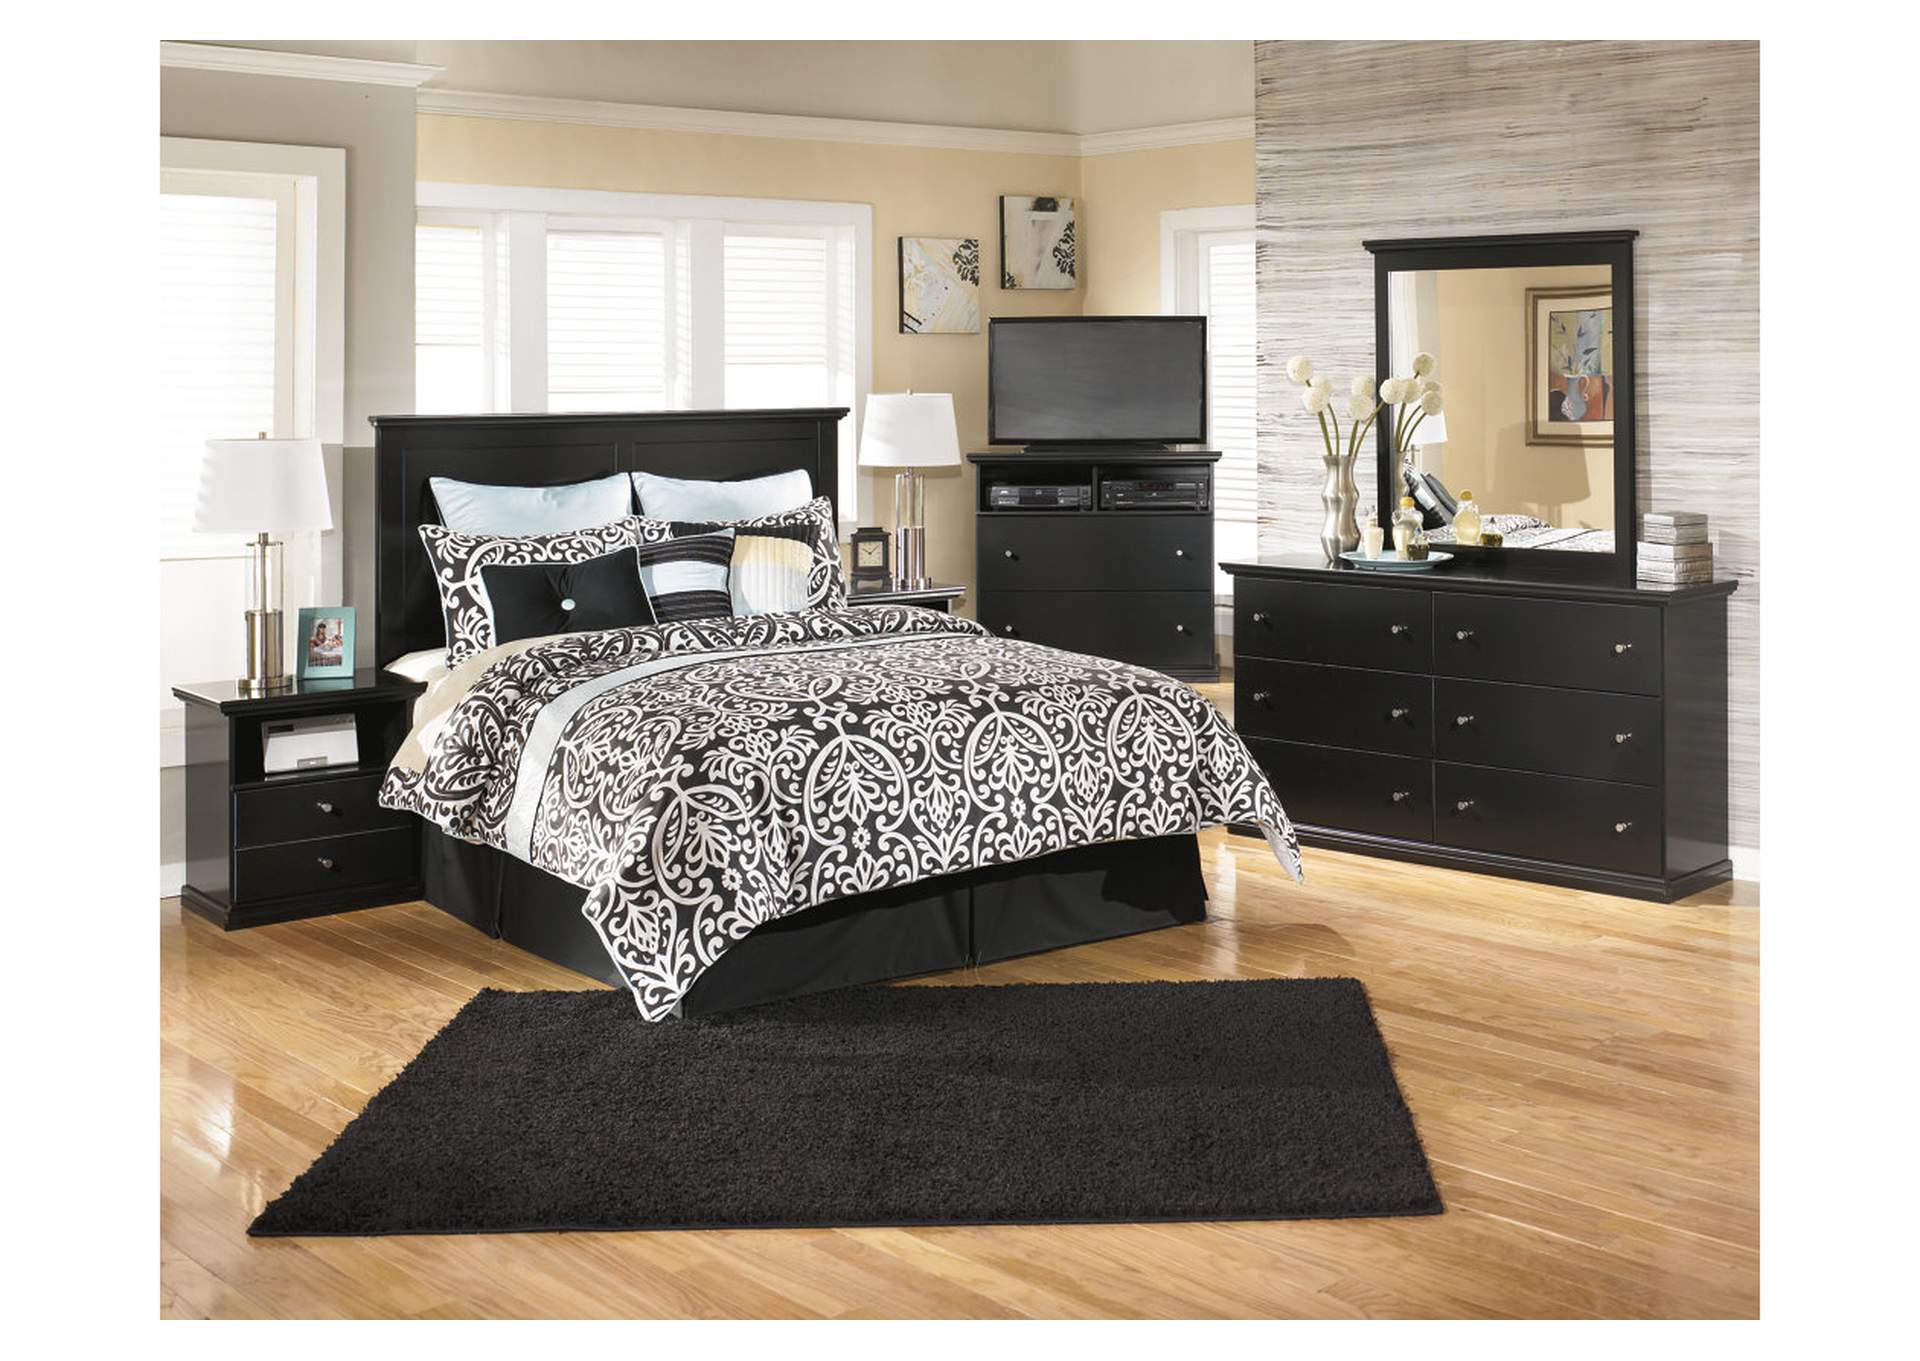 Maribel Queen/Full Panel Headboard w/Dresser, Mirror & Nightstand,Signature Design By Ashley